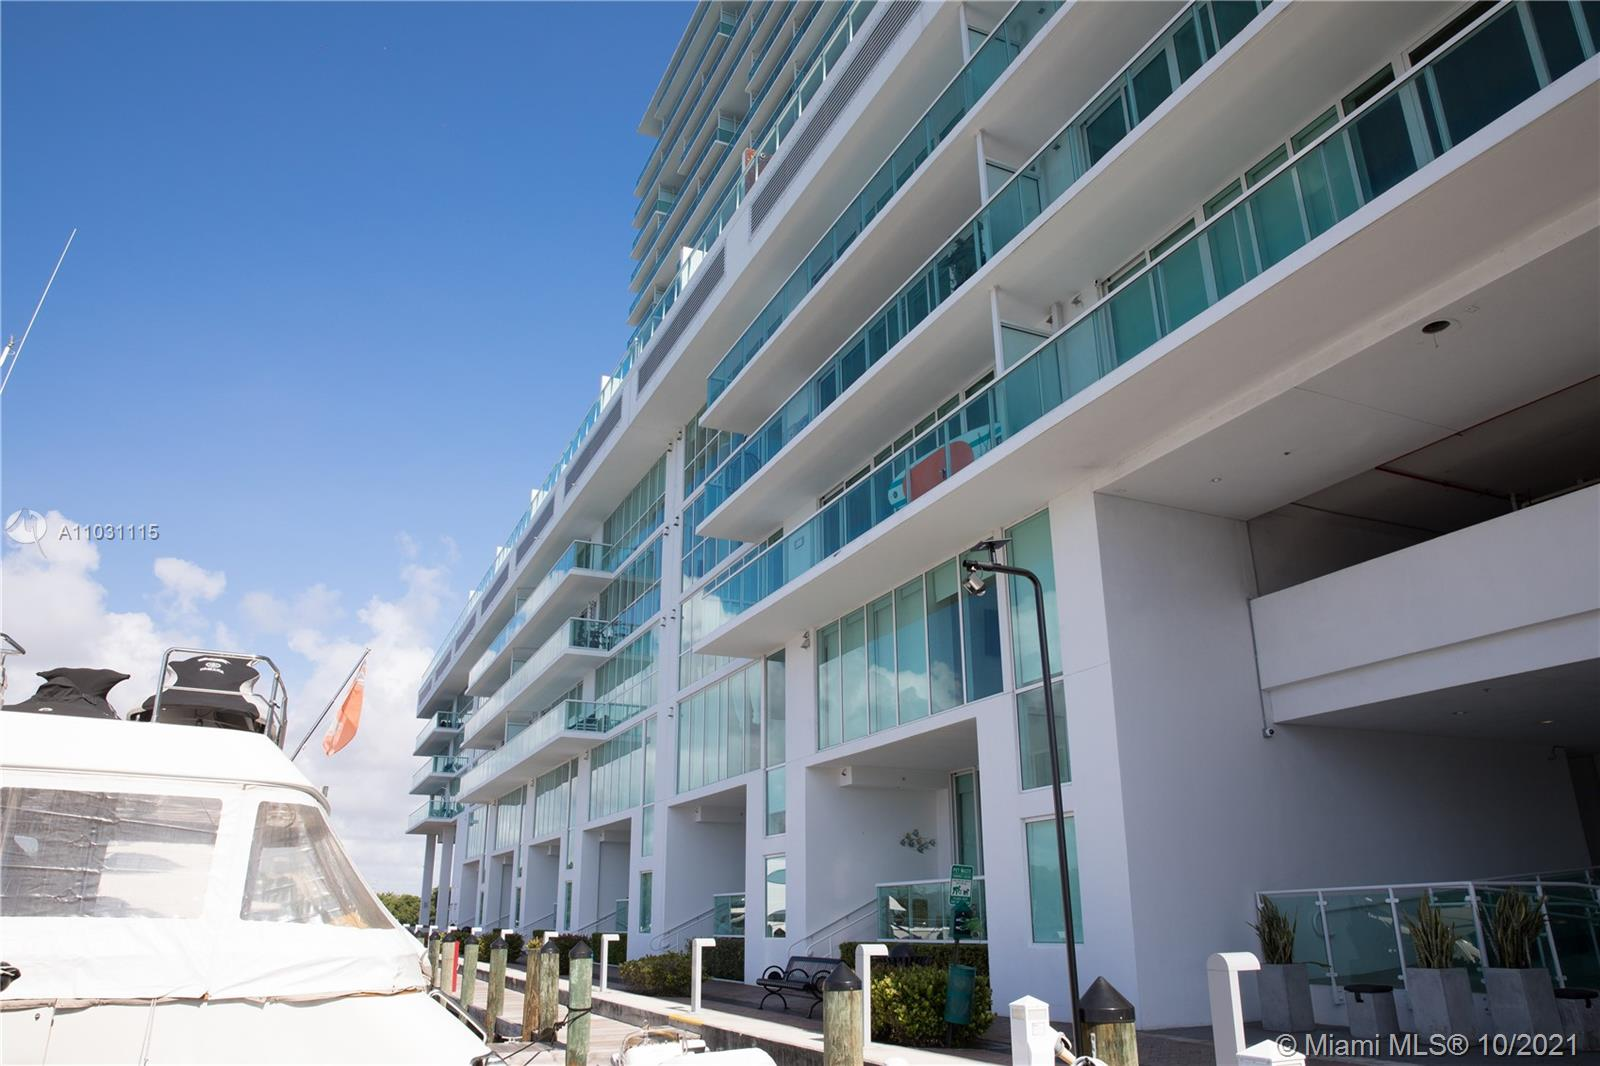 FIRST TIME ON THE MARKET - Stunning Intracoastal and Ocean views from this TurN Key & completely flow-through Corner Unit. Boasting a spacious 1,688 sq ft 3 Bedroom / 3 Bath layout, Open Kitchen concept with Stainless Steel appliances and Cordova marble in living and dining areas.  The building offers Complimentary valet parking; A private spa with saunas, steam rooms, three waterfall Jacuzzis, plus a unique Rejuvenation Center! offering the latest techniques in relaxation and beauty treatments; Bayfront Fitness Center; Olympic-style cascading infinity-edge pool. Perfect for boat lovers as well, Dock Space available for rent/sale.